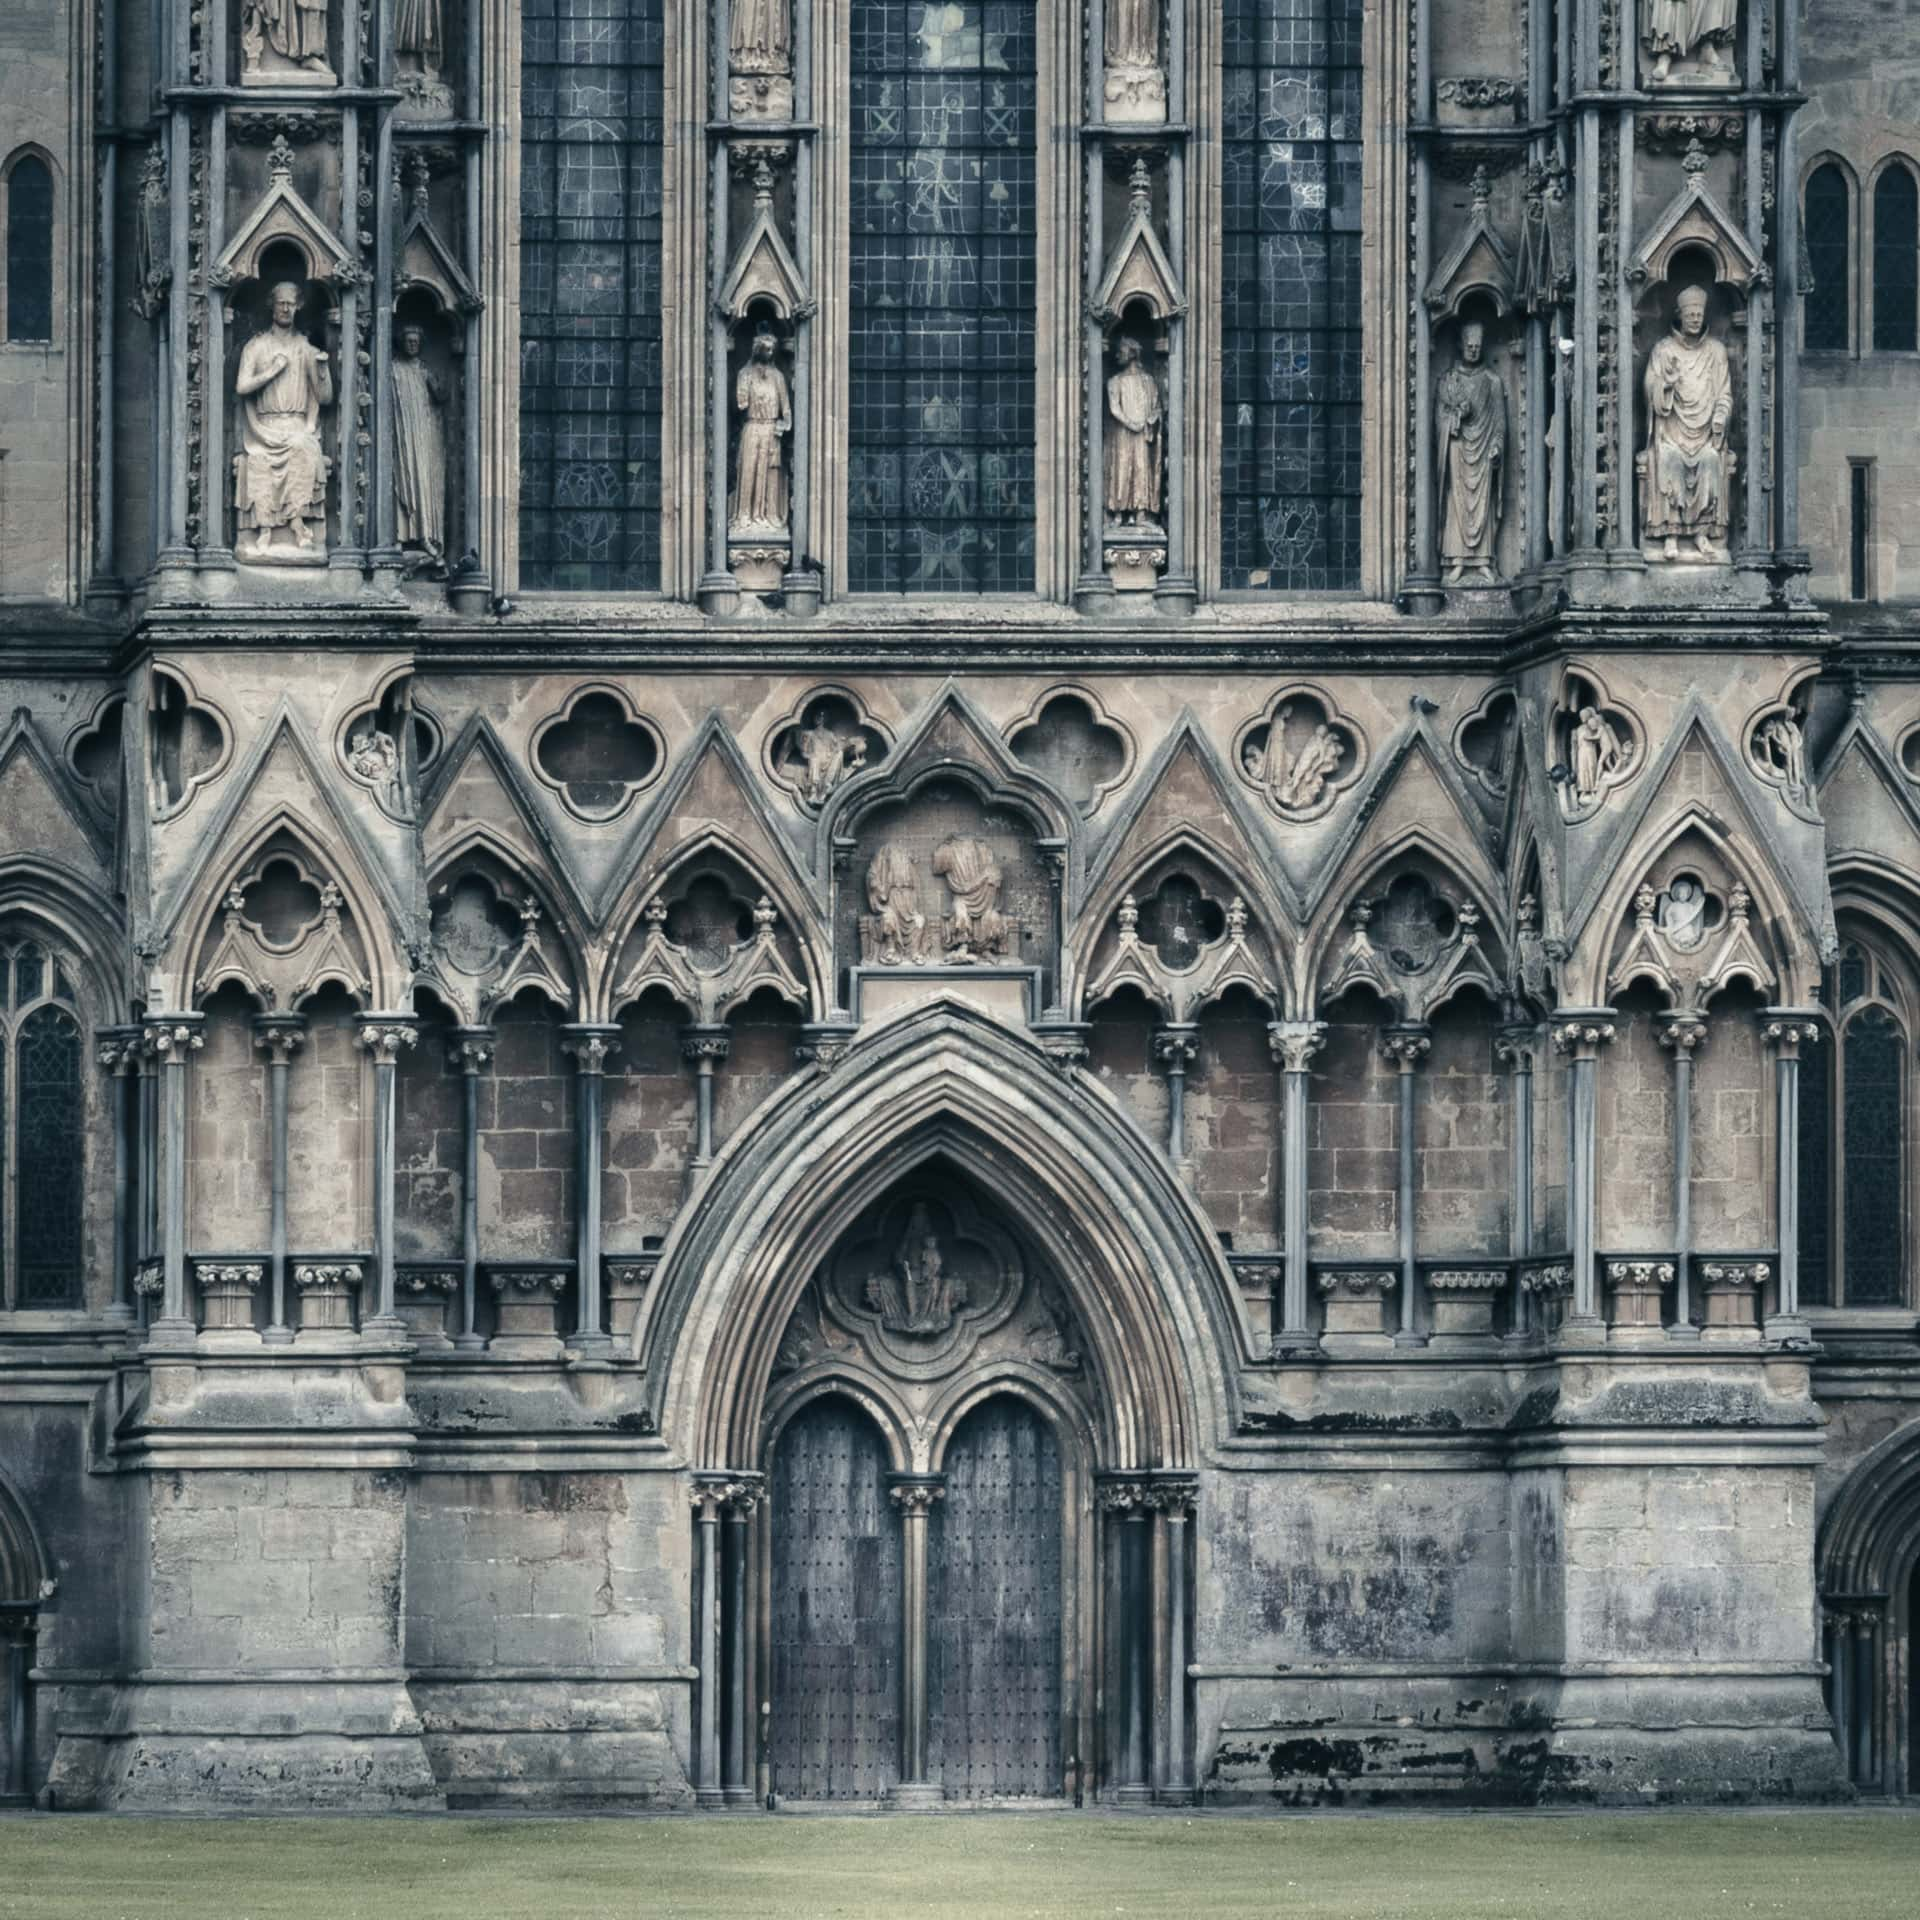 Urban Landscape photography.  View of the front of the cathedral at Wells, Somerset, England, UK